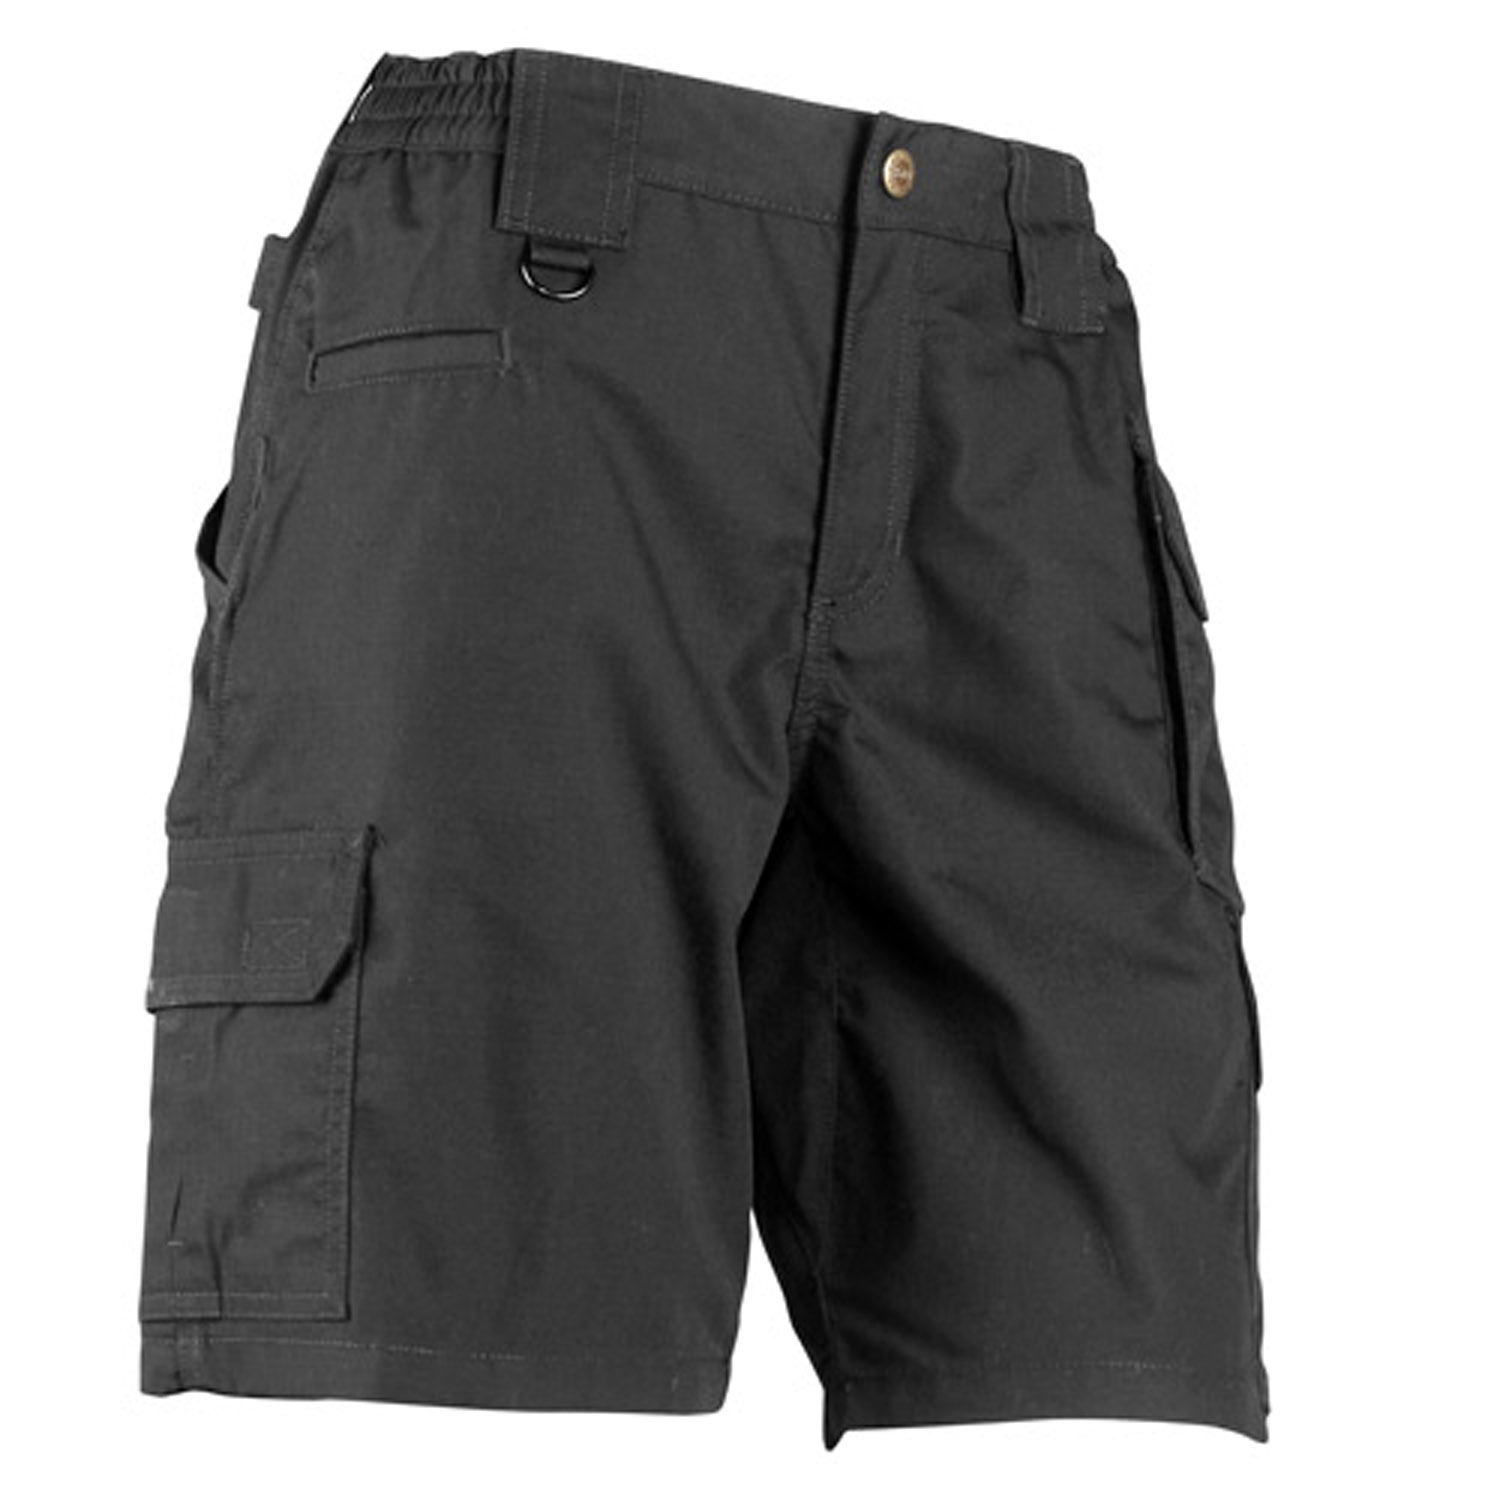 5.11 Tactical TacLite Pro Women's Ripstop Shorts